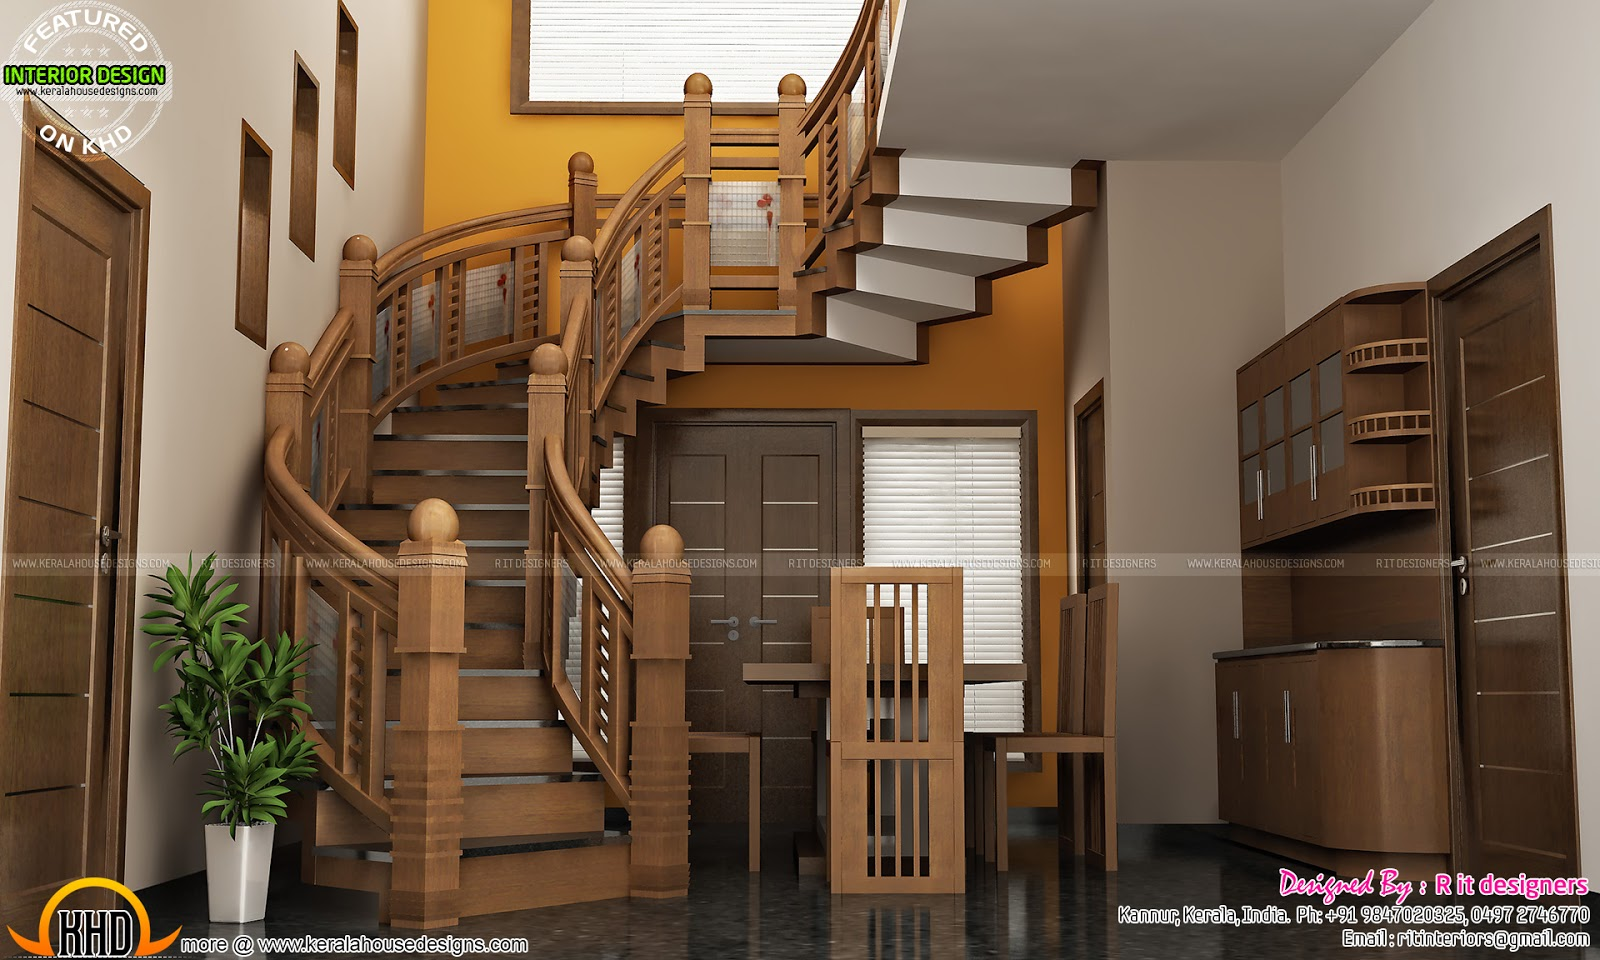 Under stair design wooden stair kitchen and living House model interior design